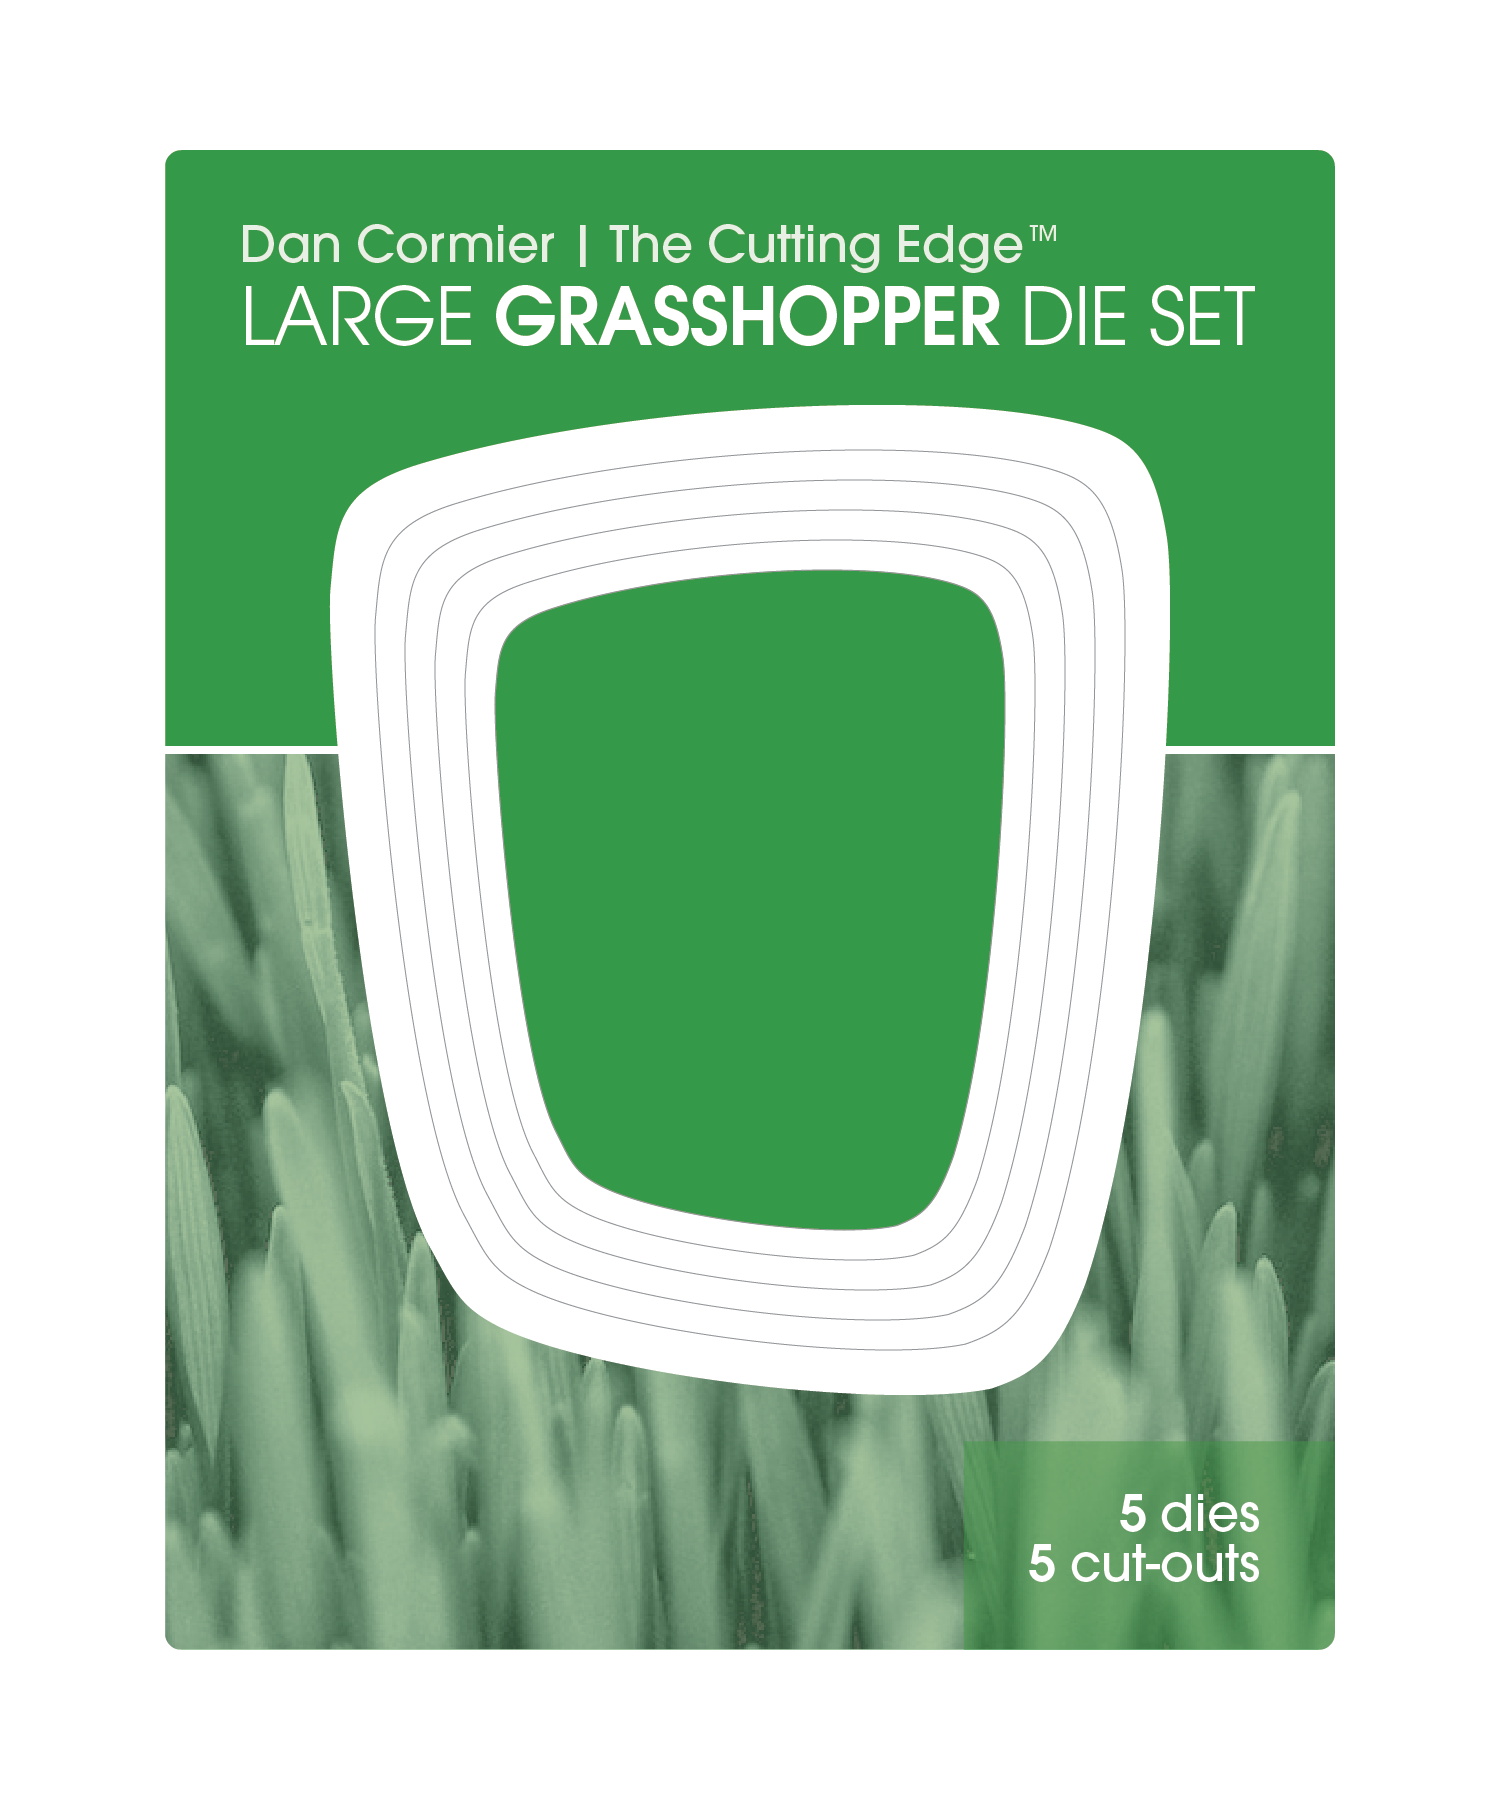 Large GRASSHOPPER Cover.png